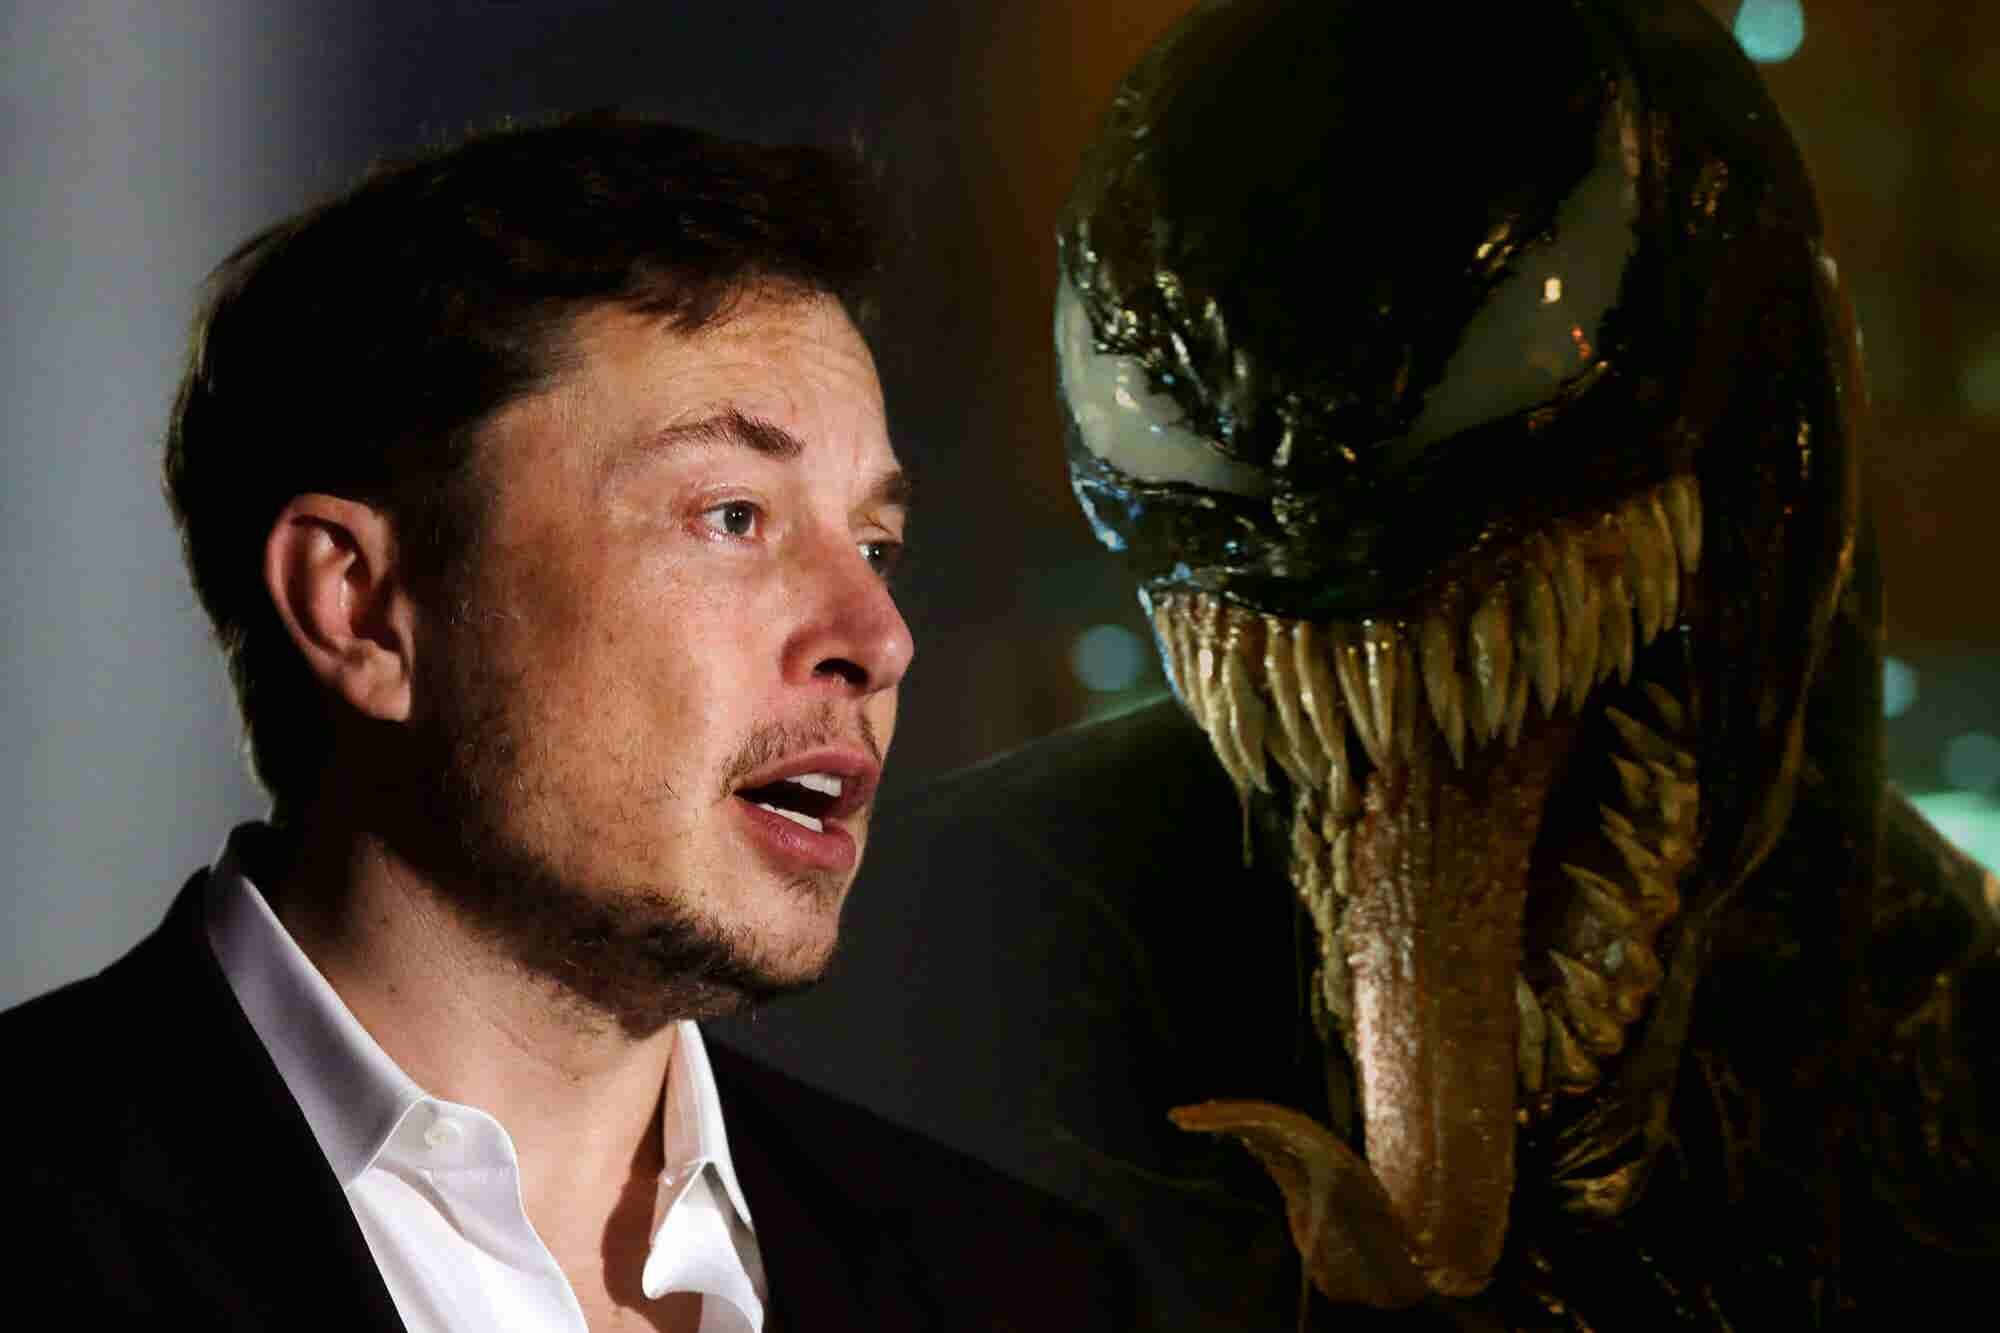 Elon Musk Is Basically the Villain of the 'Venom' Movie